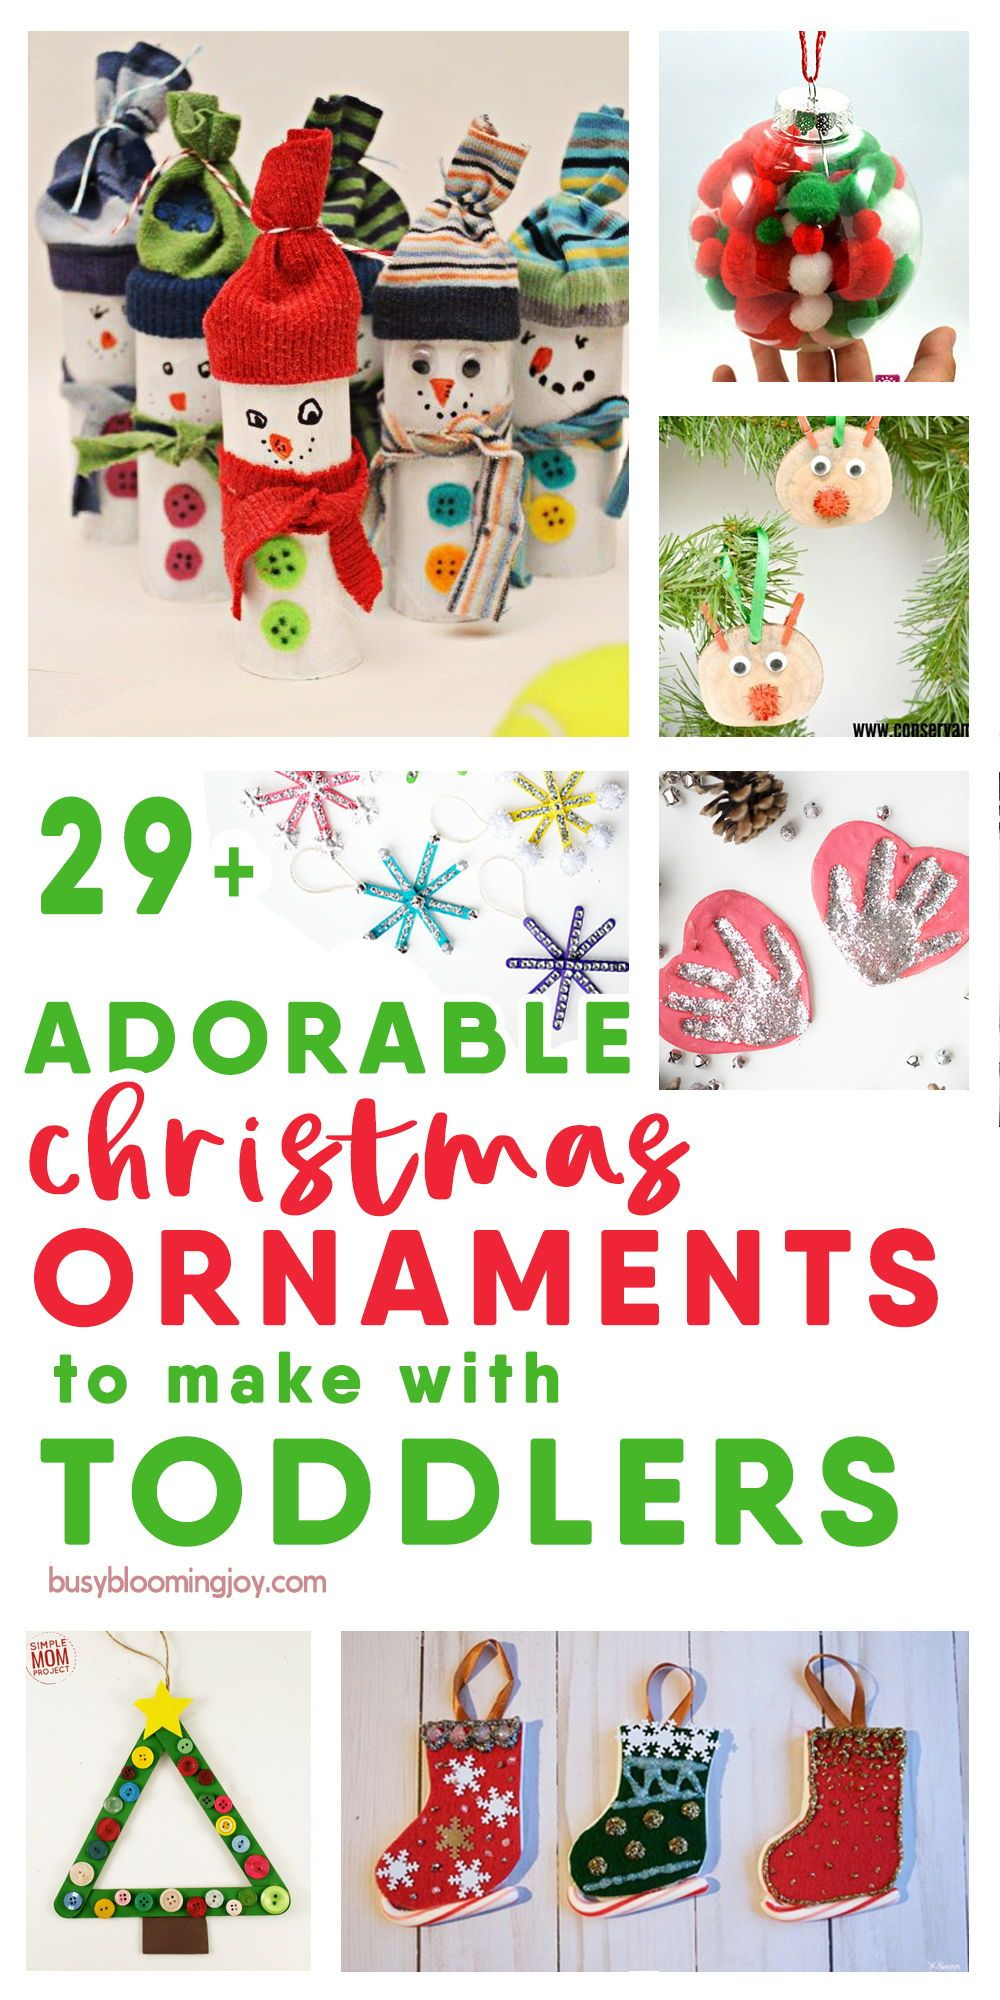 39 Adorable Christmas Ornaments For Kids To Make Or Help With Diy Christmas Ornaments Easy Christmas Ornaments To Make Christmas Tree Ornaments To Make